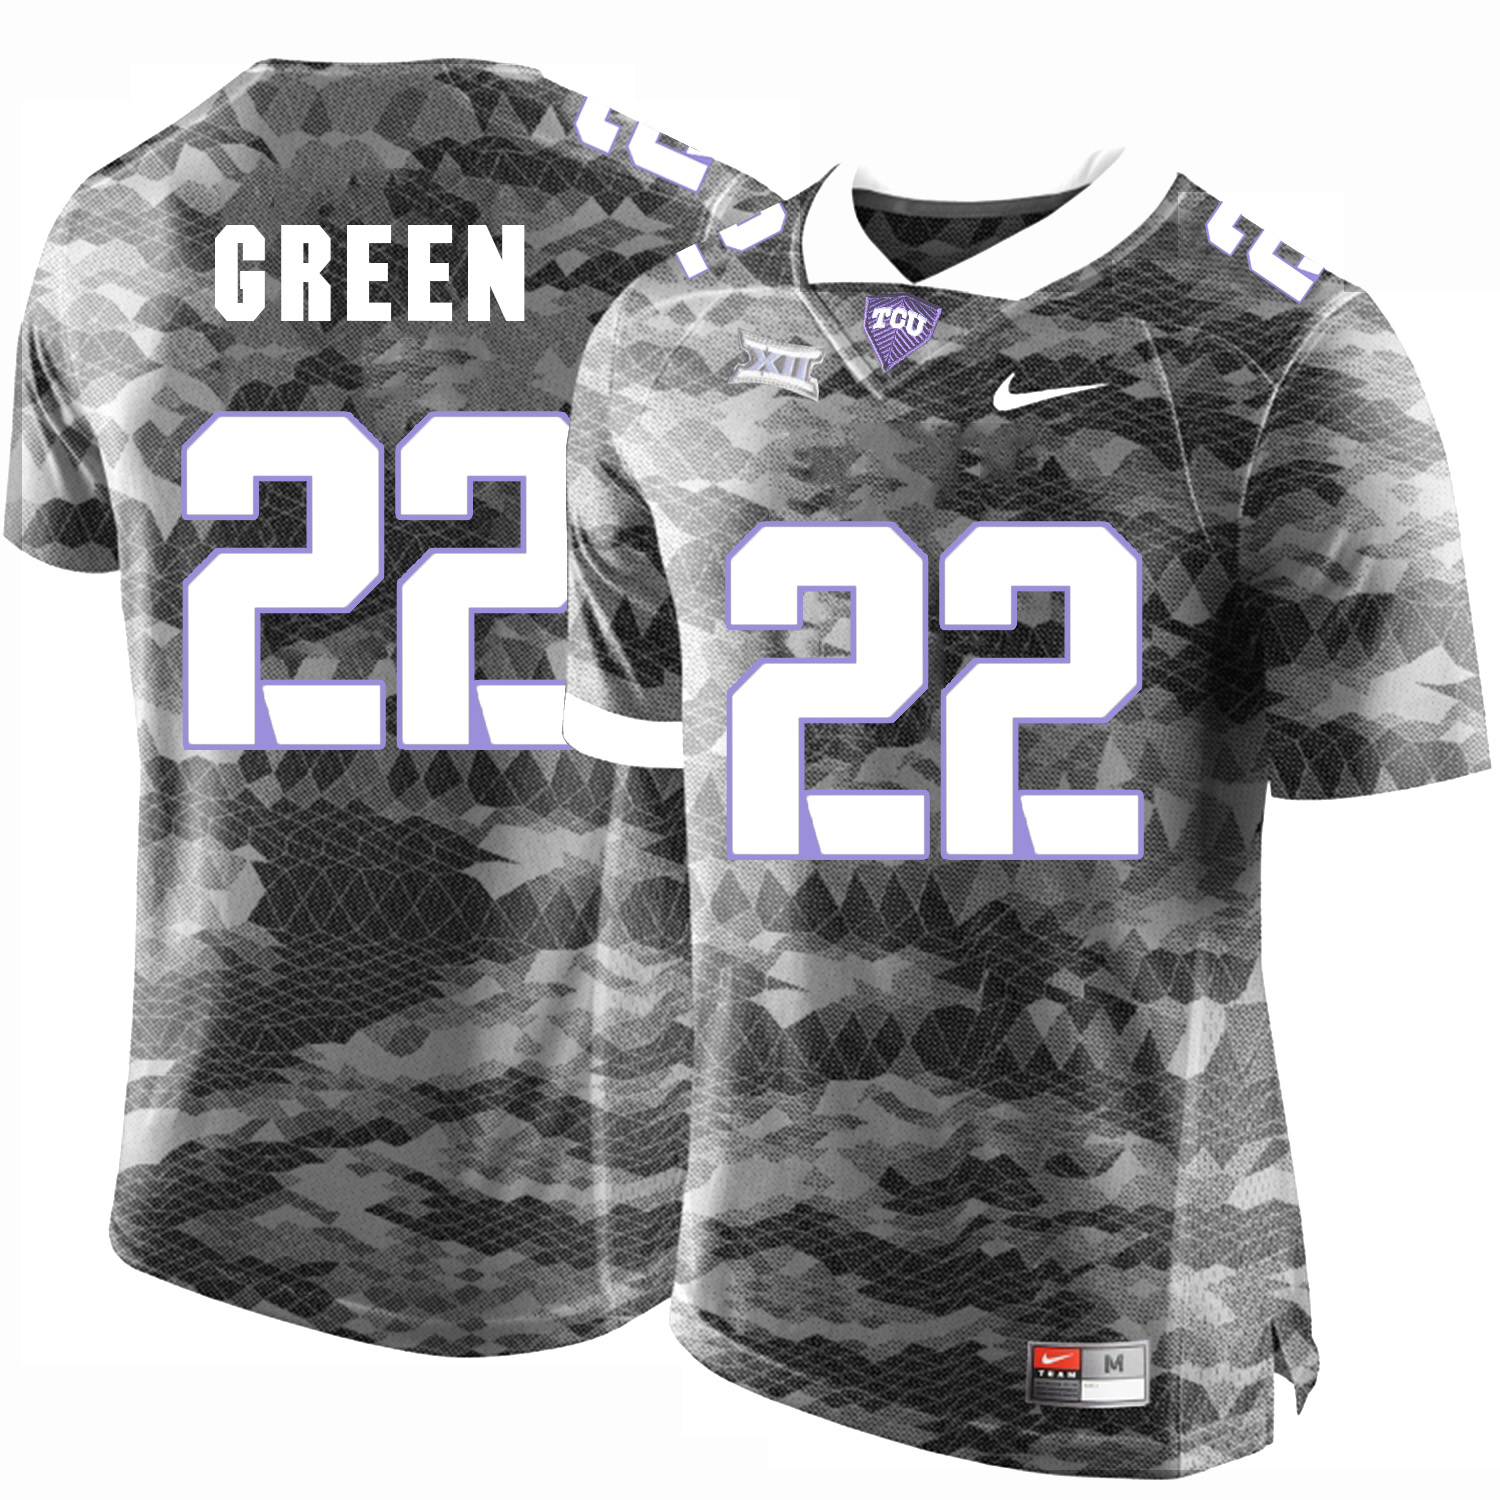 TCU Horned Frogs 22 Aaron Green Gray College Football Limited Jersey